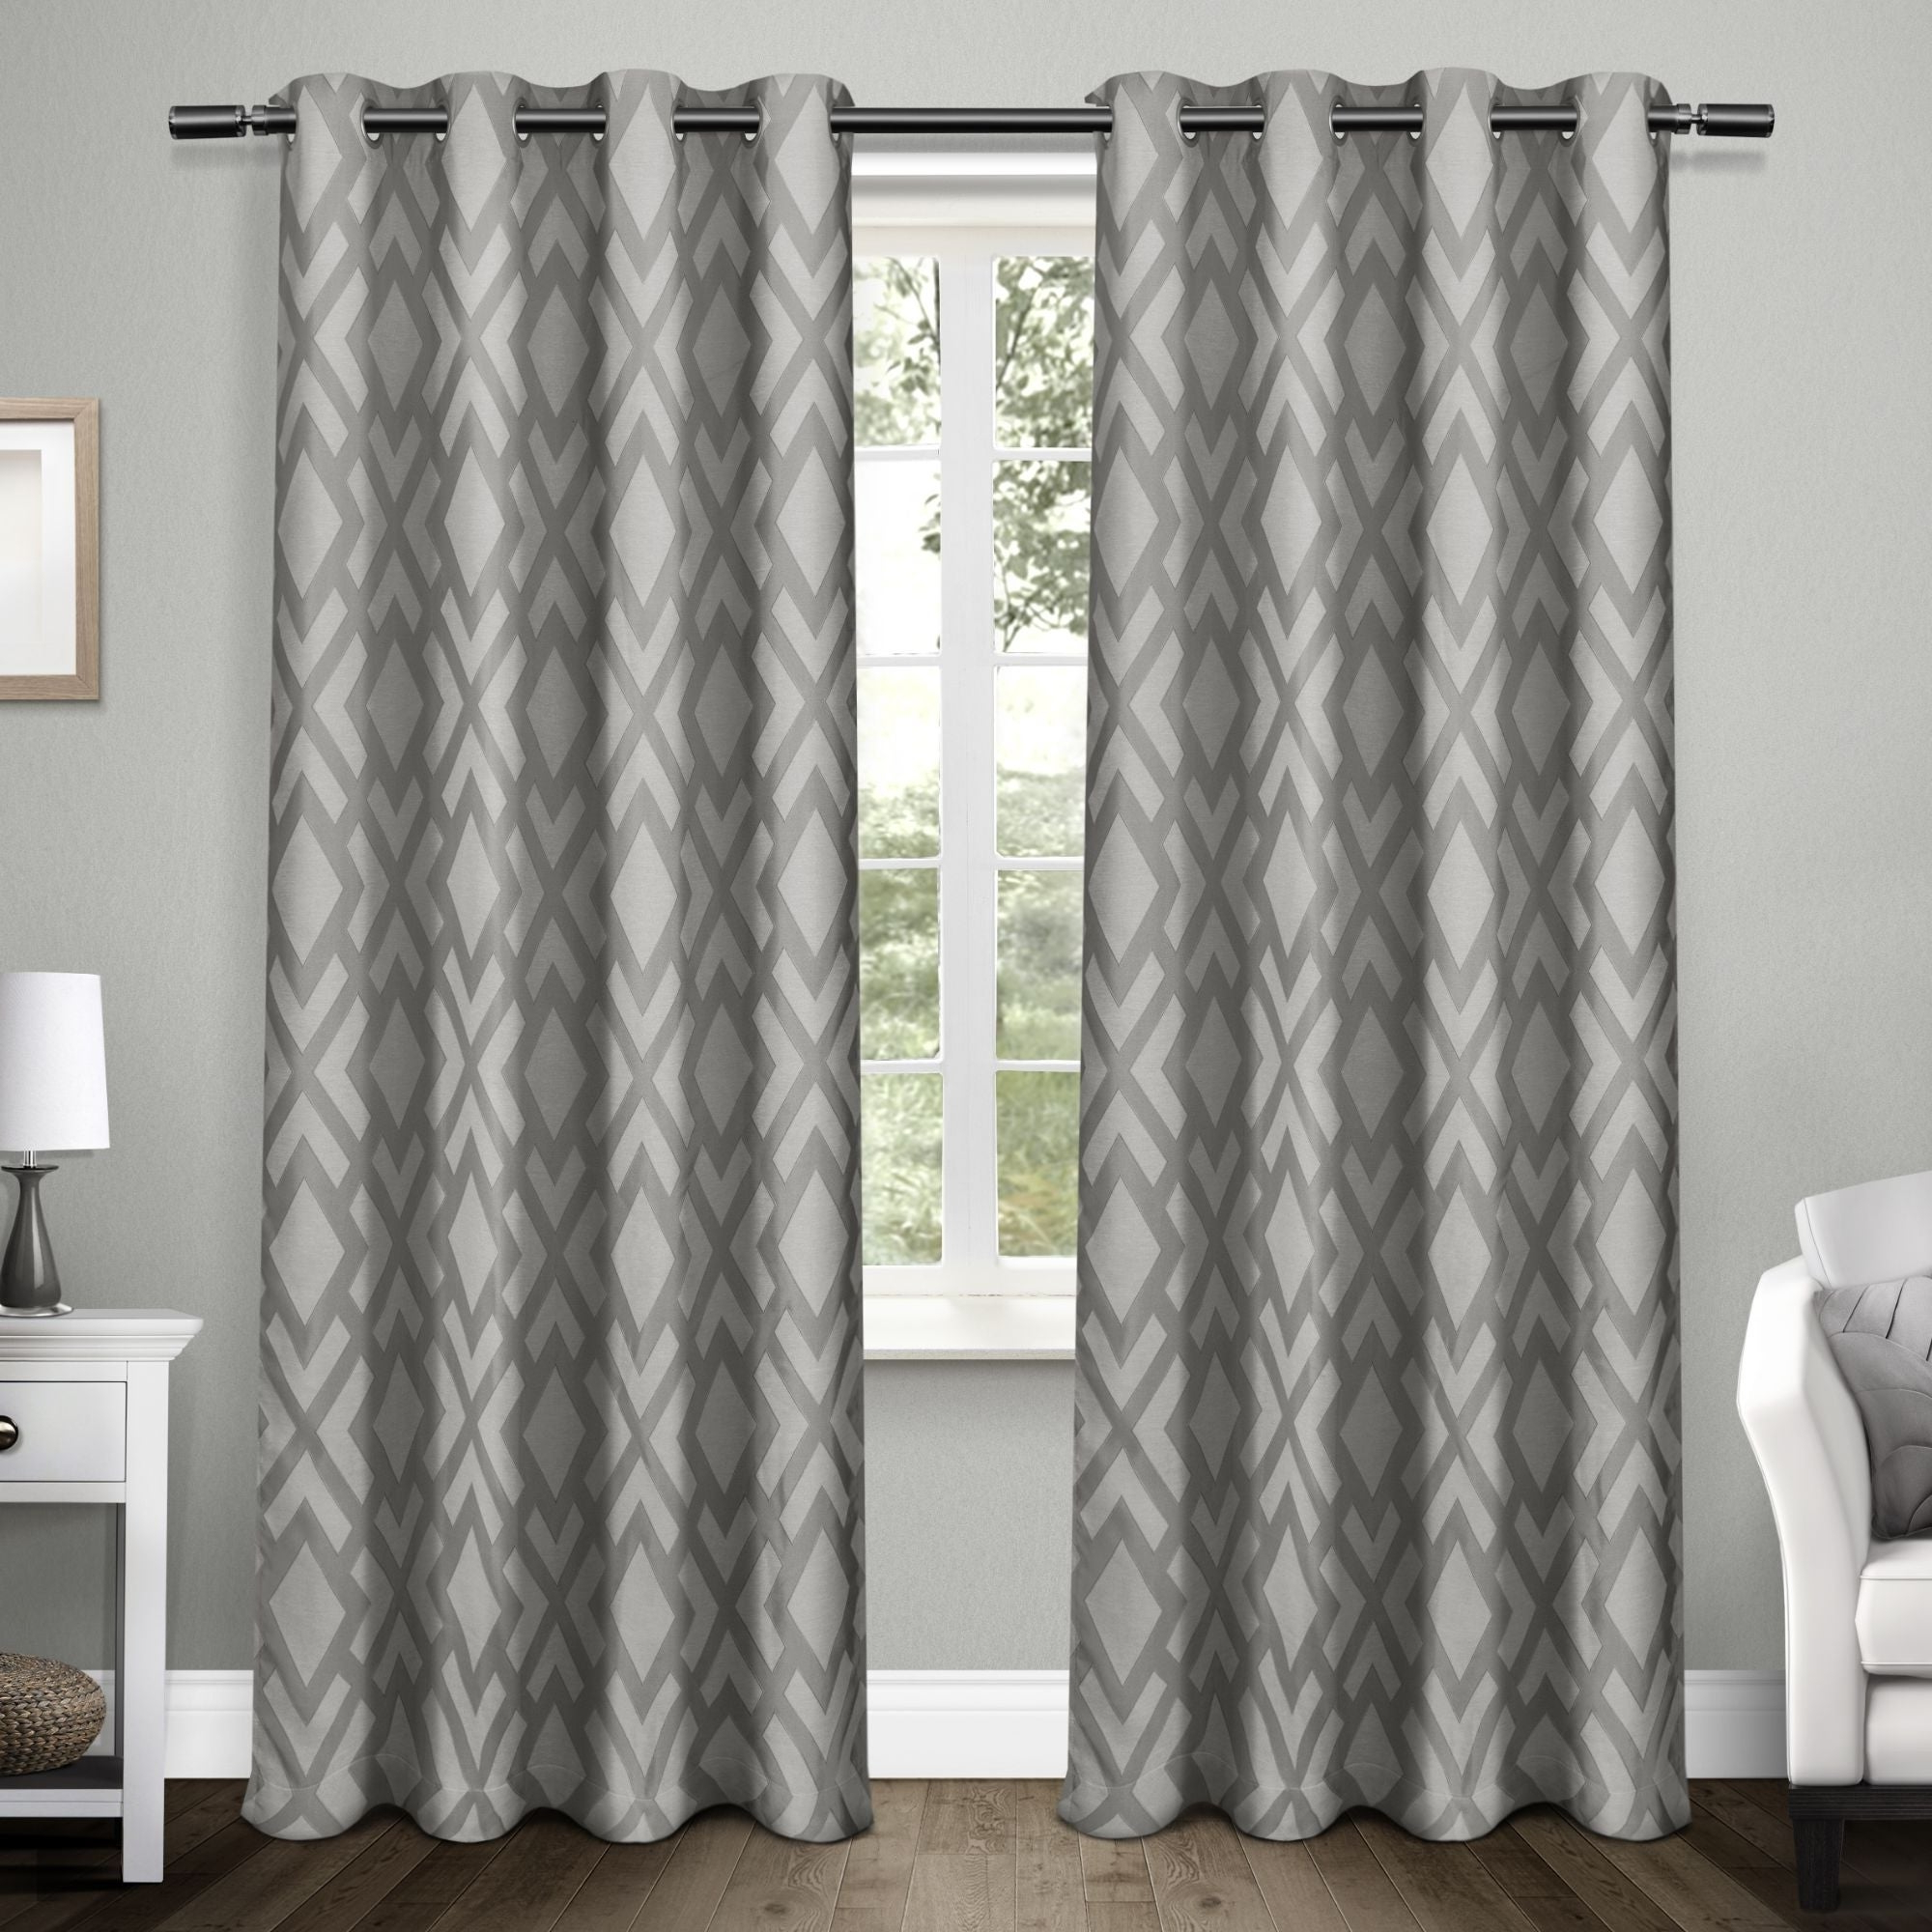 Latest Ati Home Easton Thermal Woven Blackout Grommet Top Curtain Panel Pair Inside Twig Insulated Blackout Curtain Panel Pairs With Grommet Top (View 5 of 20)